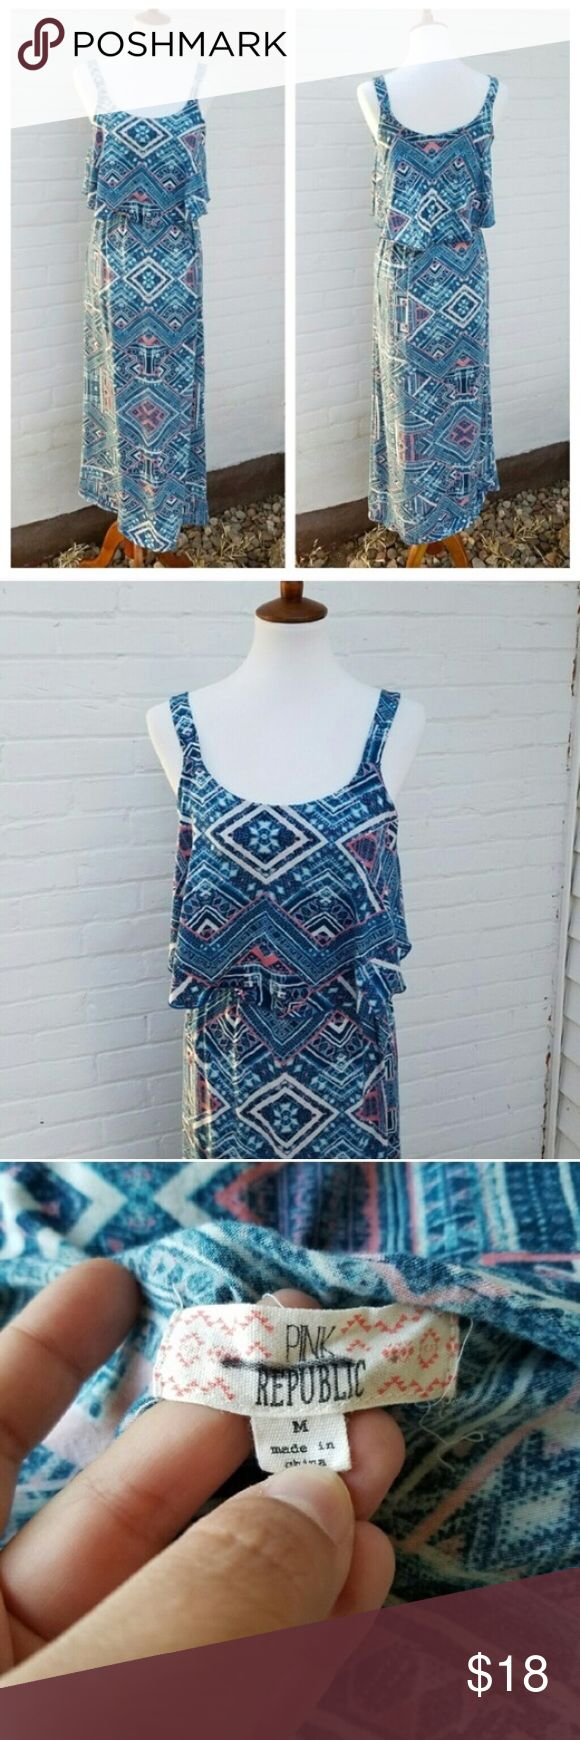 Pink Republic Blue Aztec Maxi Dress Gently used . Stretchy . Stretchy waist band . Non-adjustable straps .  #011804 Pink Republic Dresses Maxi